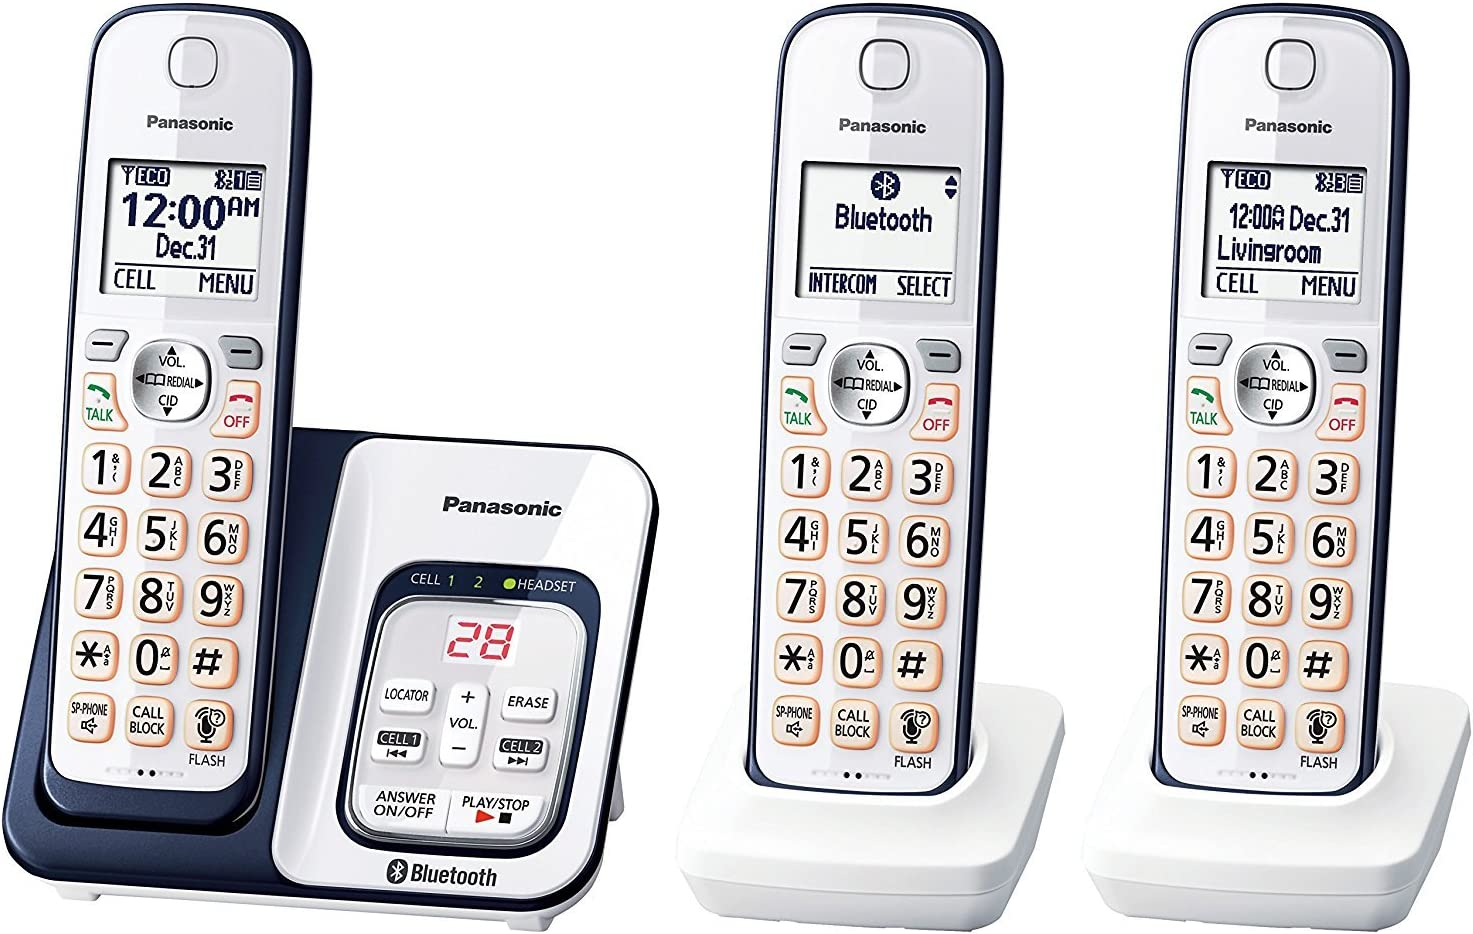 Panasonic KX-TGD563A Link2Cell Bluetooth Cordless Phone with Voice Assist and Answering Machine - 3 Handsets (Renewed)